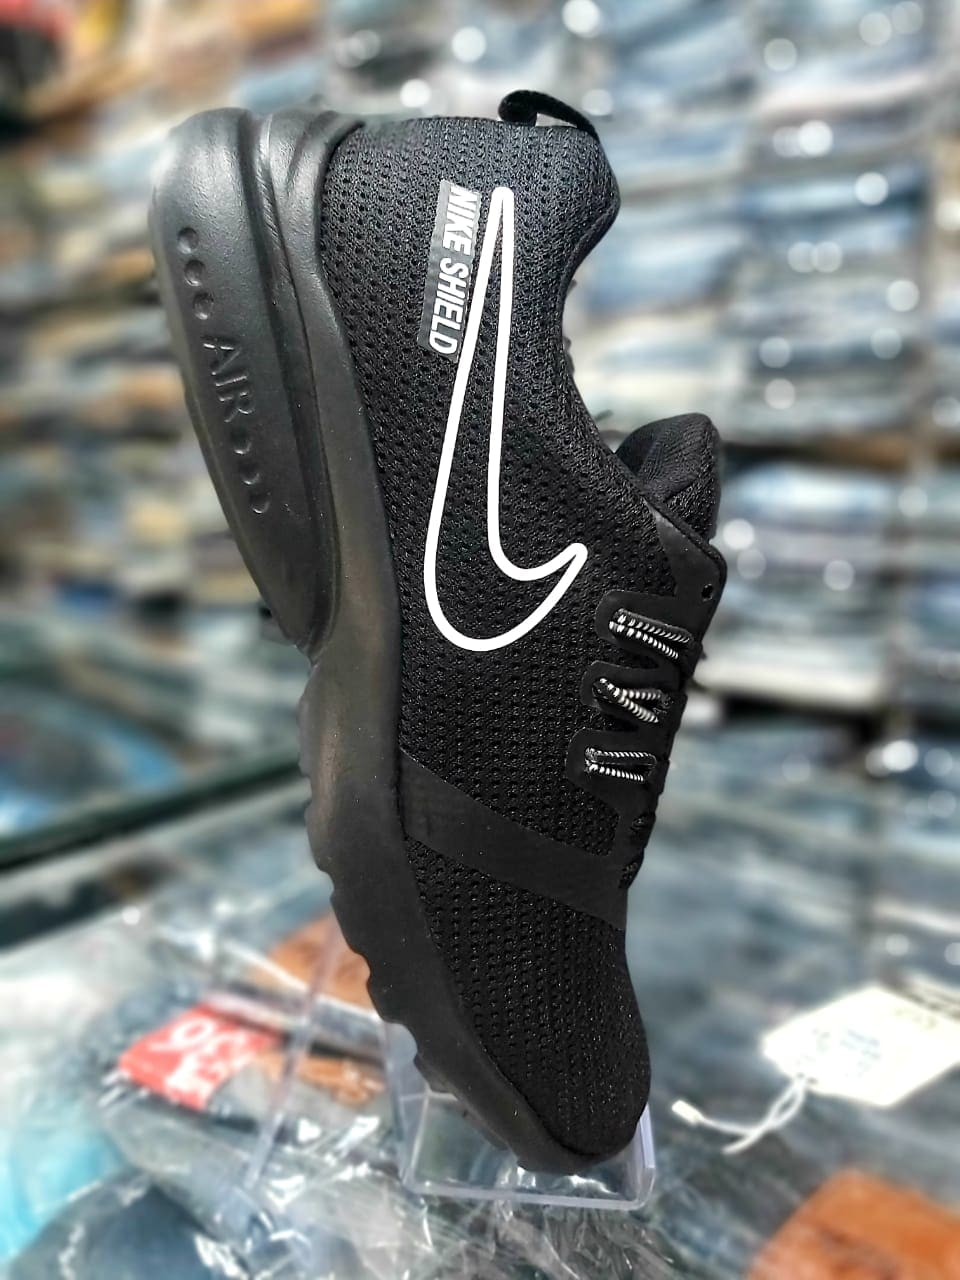 Men's Shoes Stylish Sports Wear Black Shoes SS04 (8)